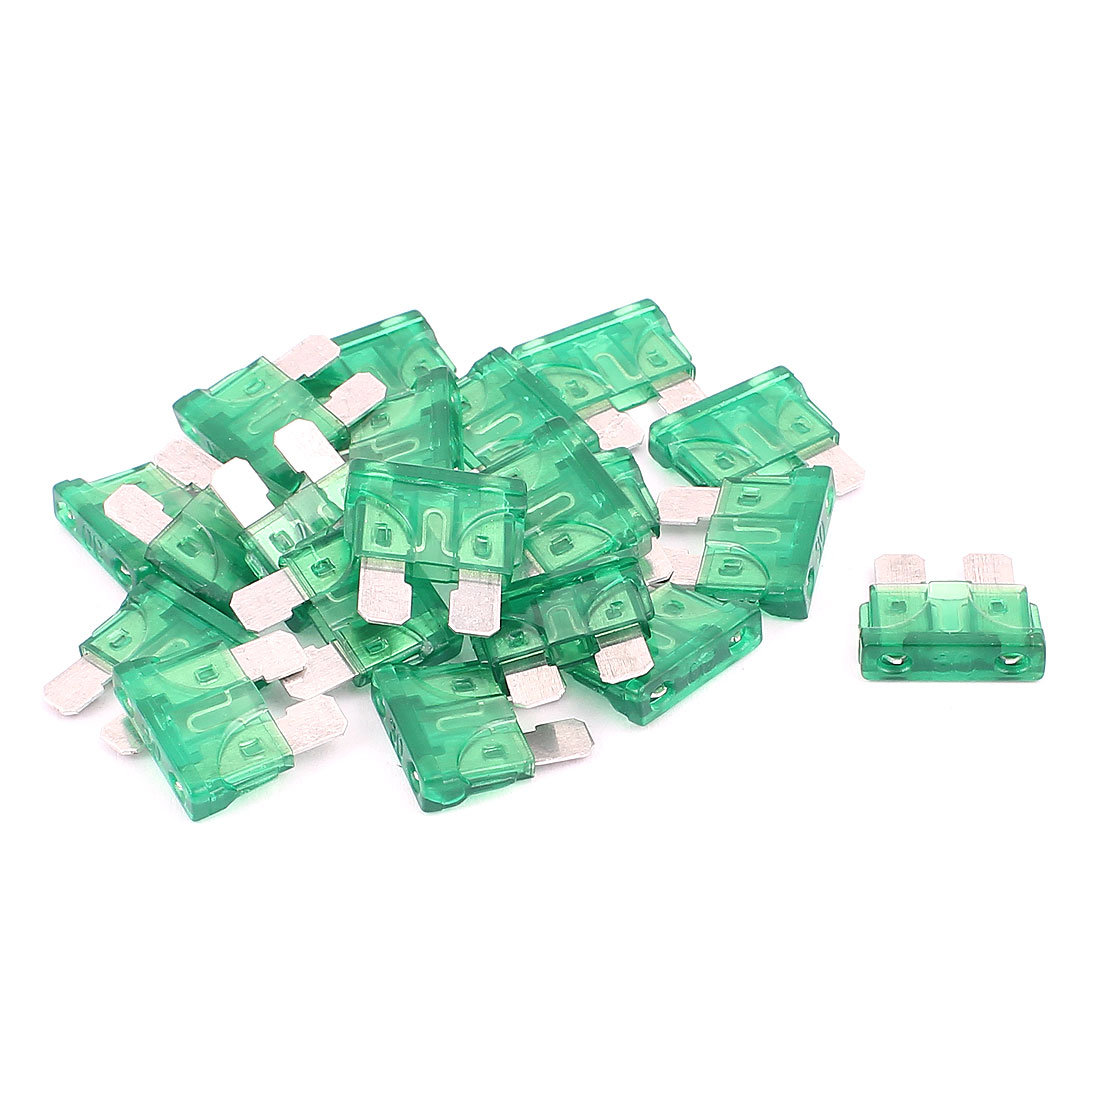 20pcs 30A Green Plastic Housing Blade Fuse for Auto Car Truck Motorbike SUV